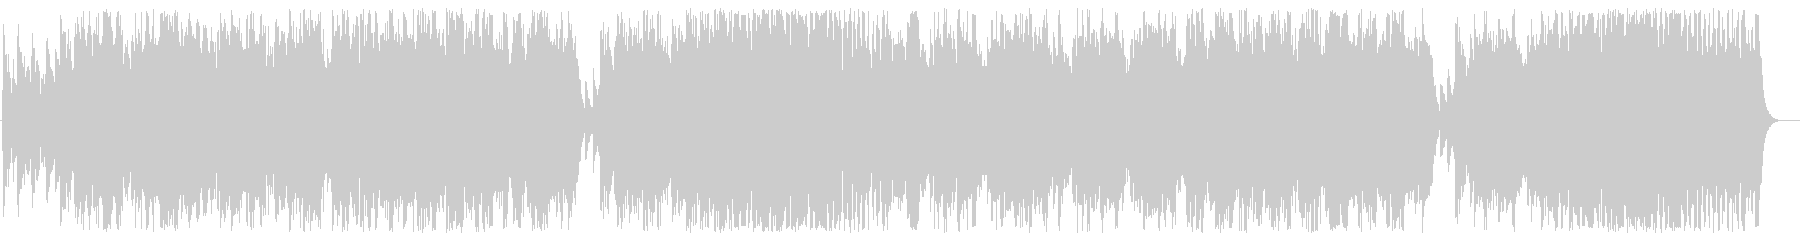 """Toast song (from the opera """"Tsubaki"""")'s unreproduced waveform"""